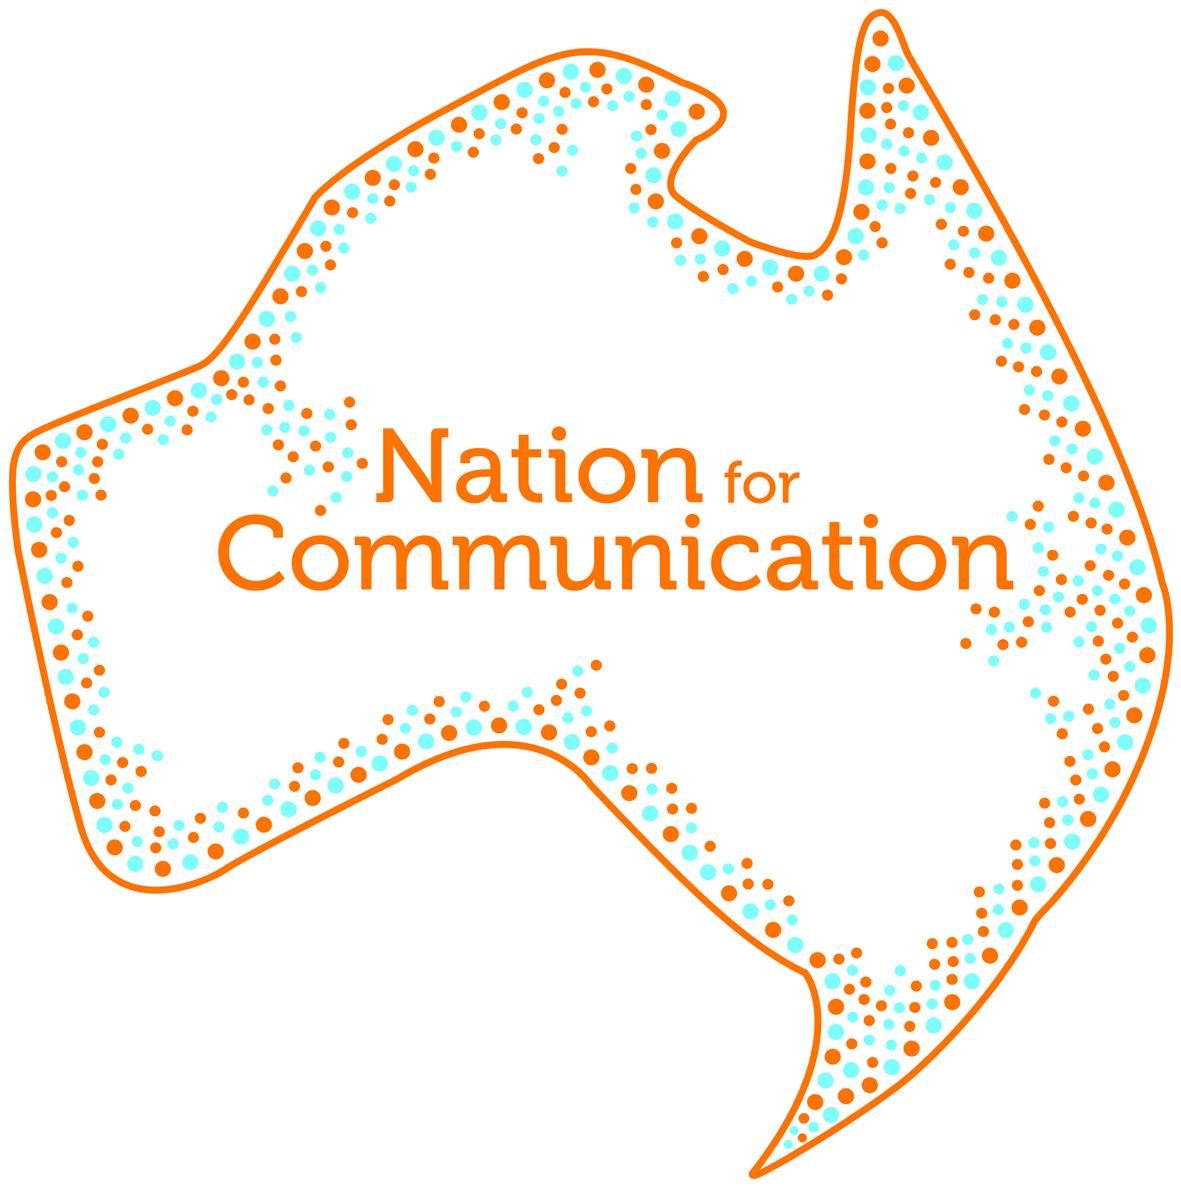 Nation for Communication